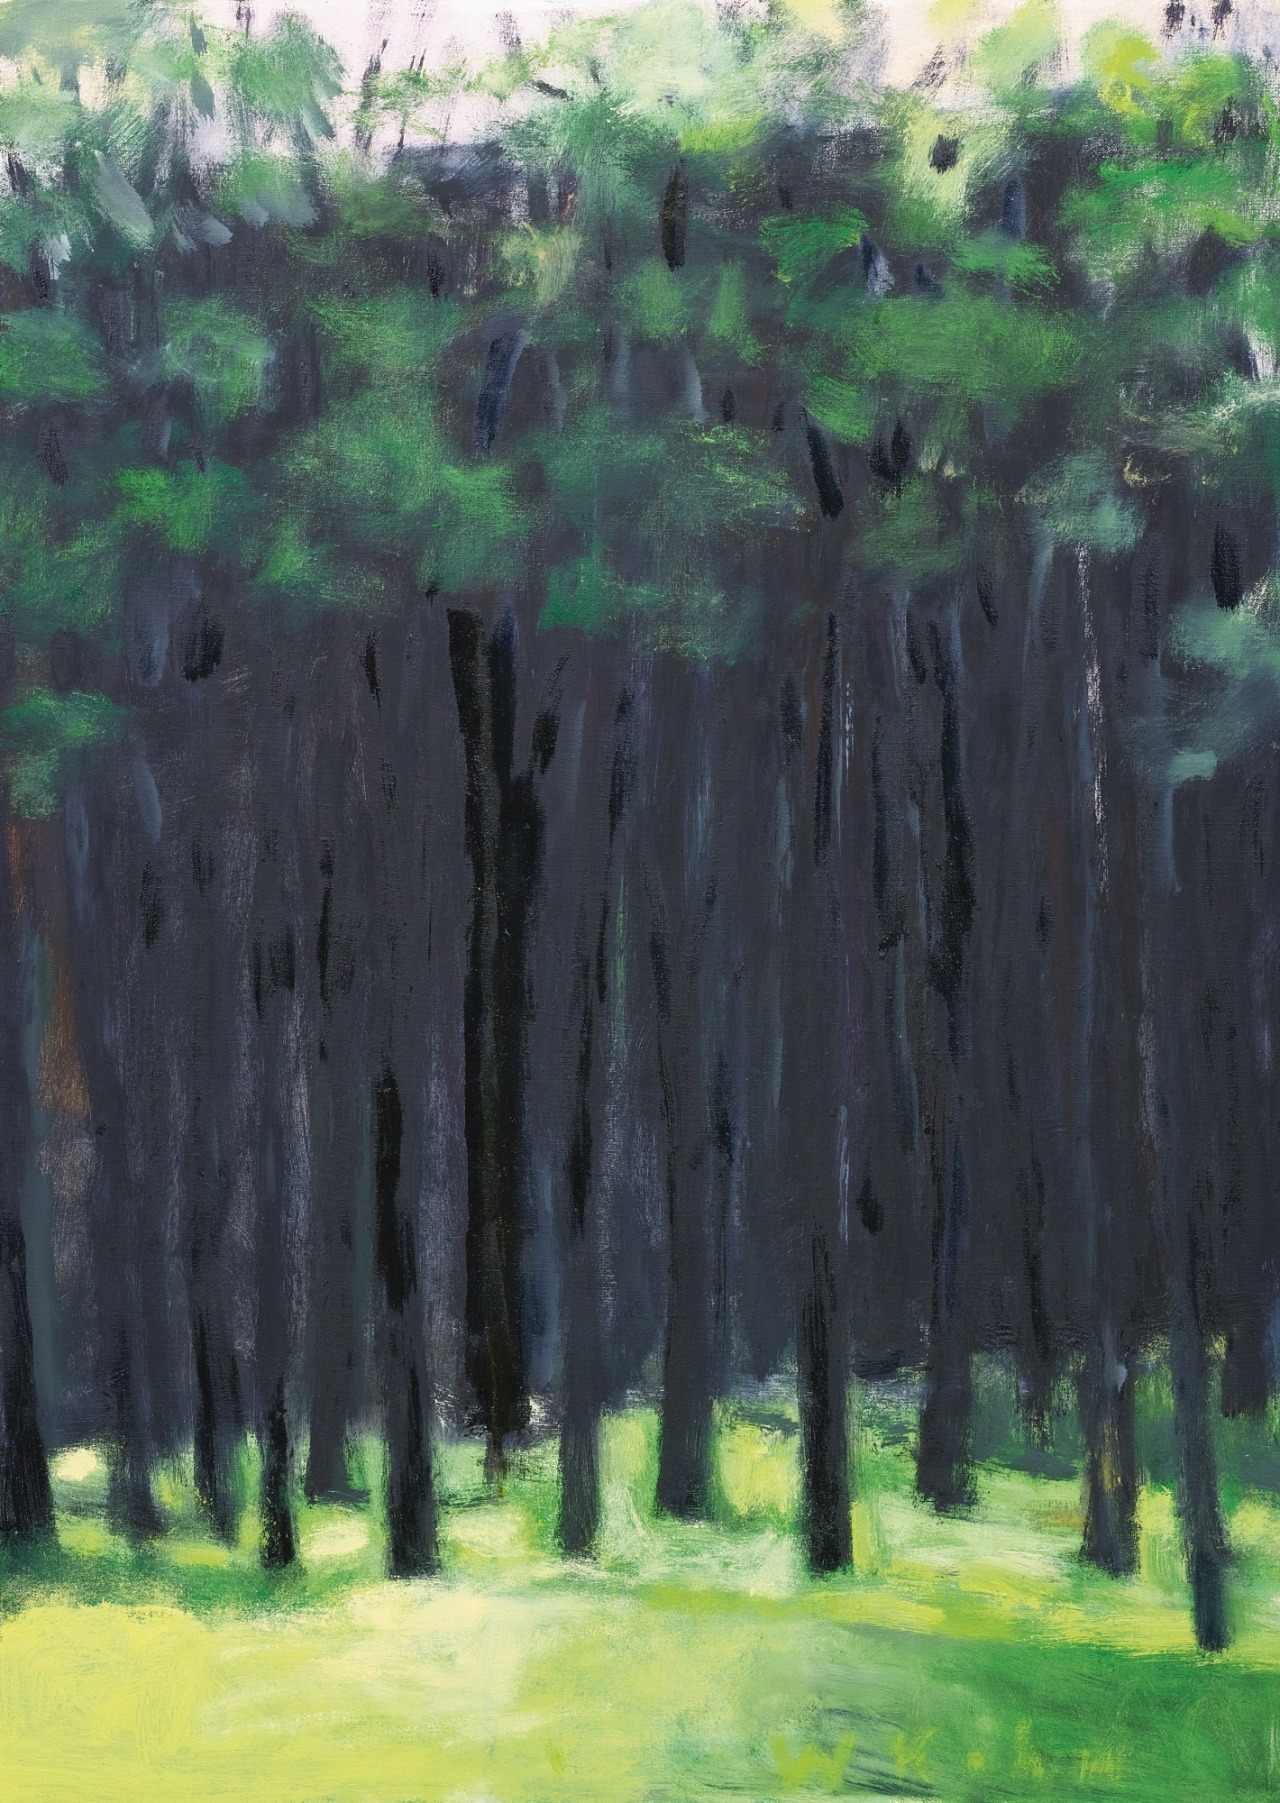 lawrenceleemagnuson:  Wolf Kahn (USA b. 1927) Green and Black (2002) oil on canvas 73.6 x 53.5 cmhttp://www.wolfkahn.com/